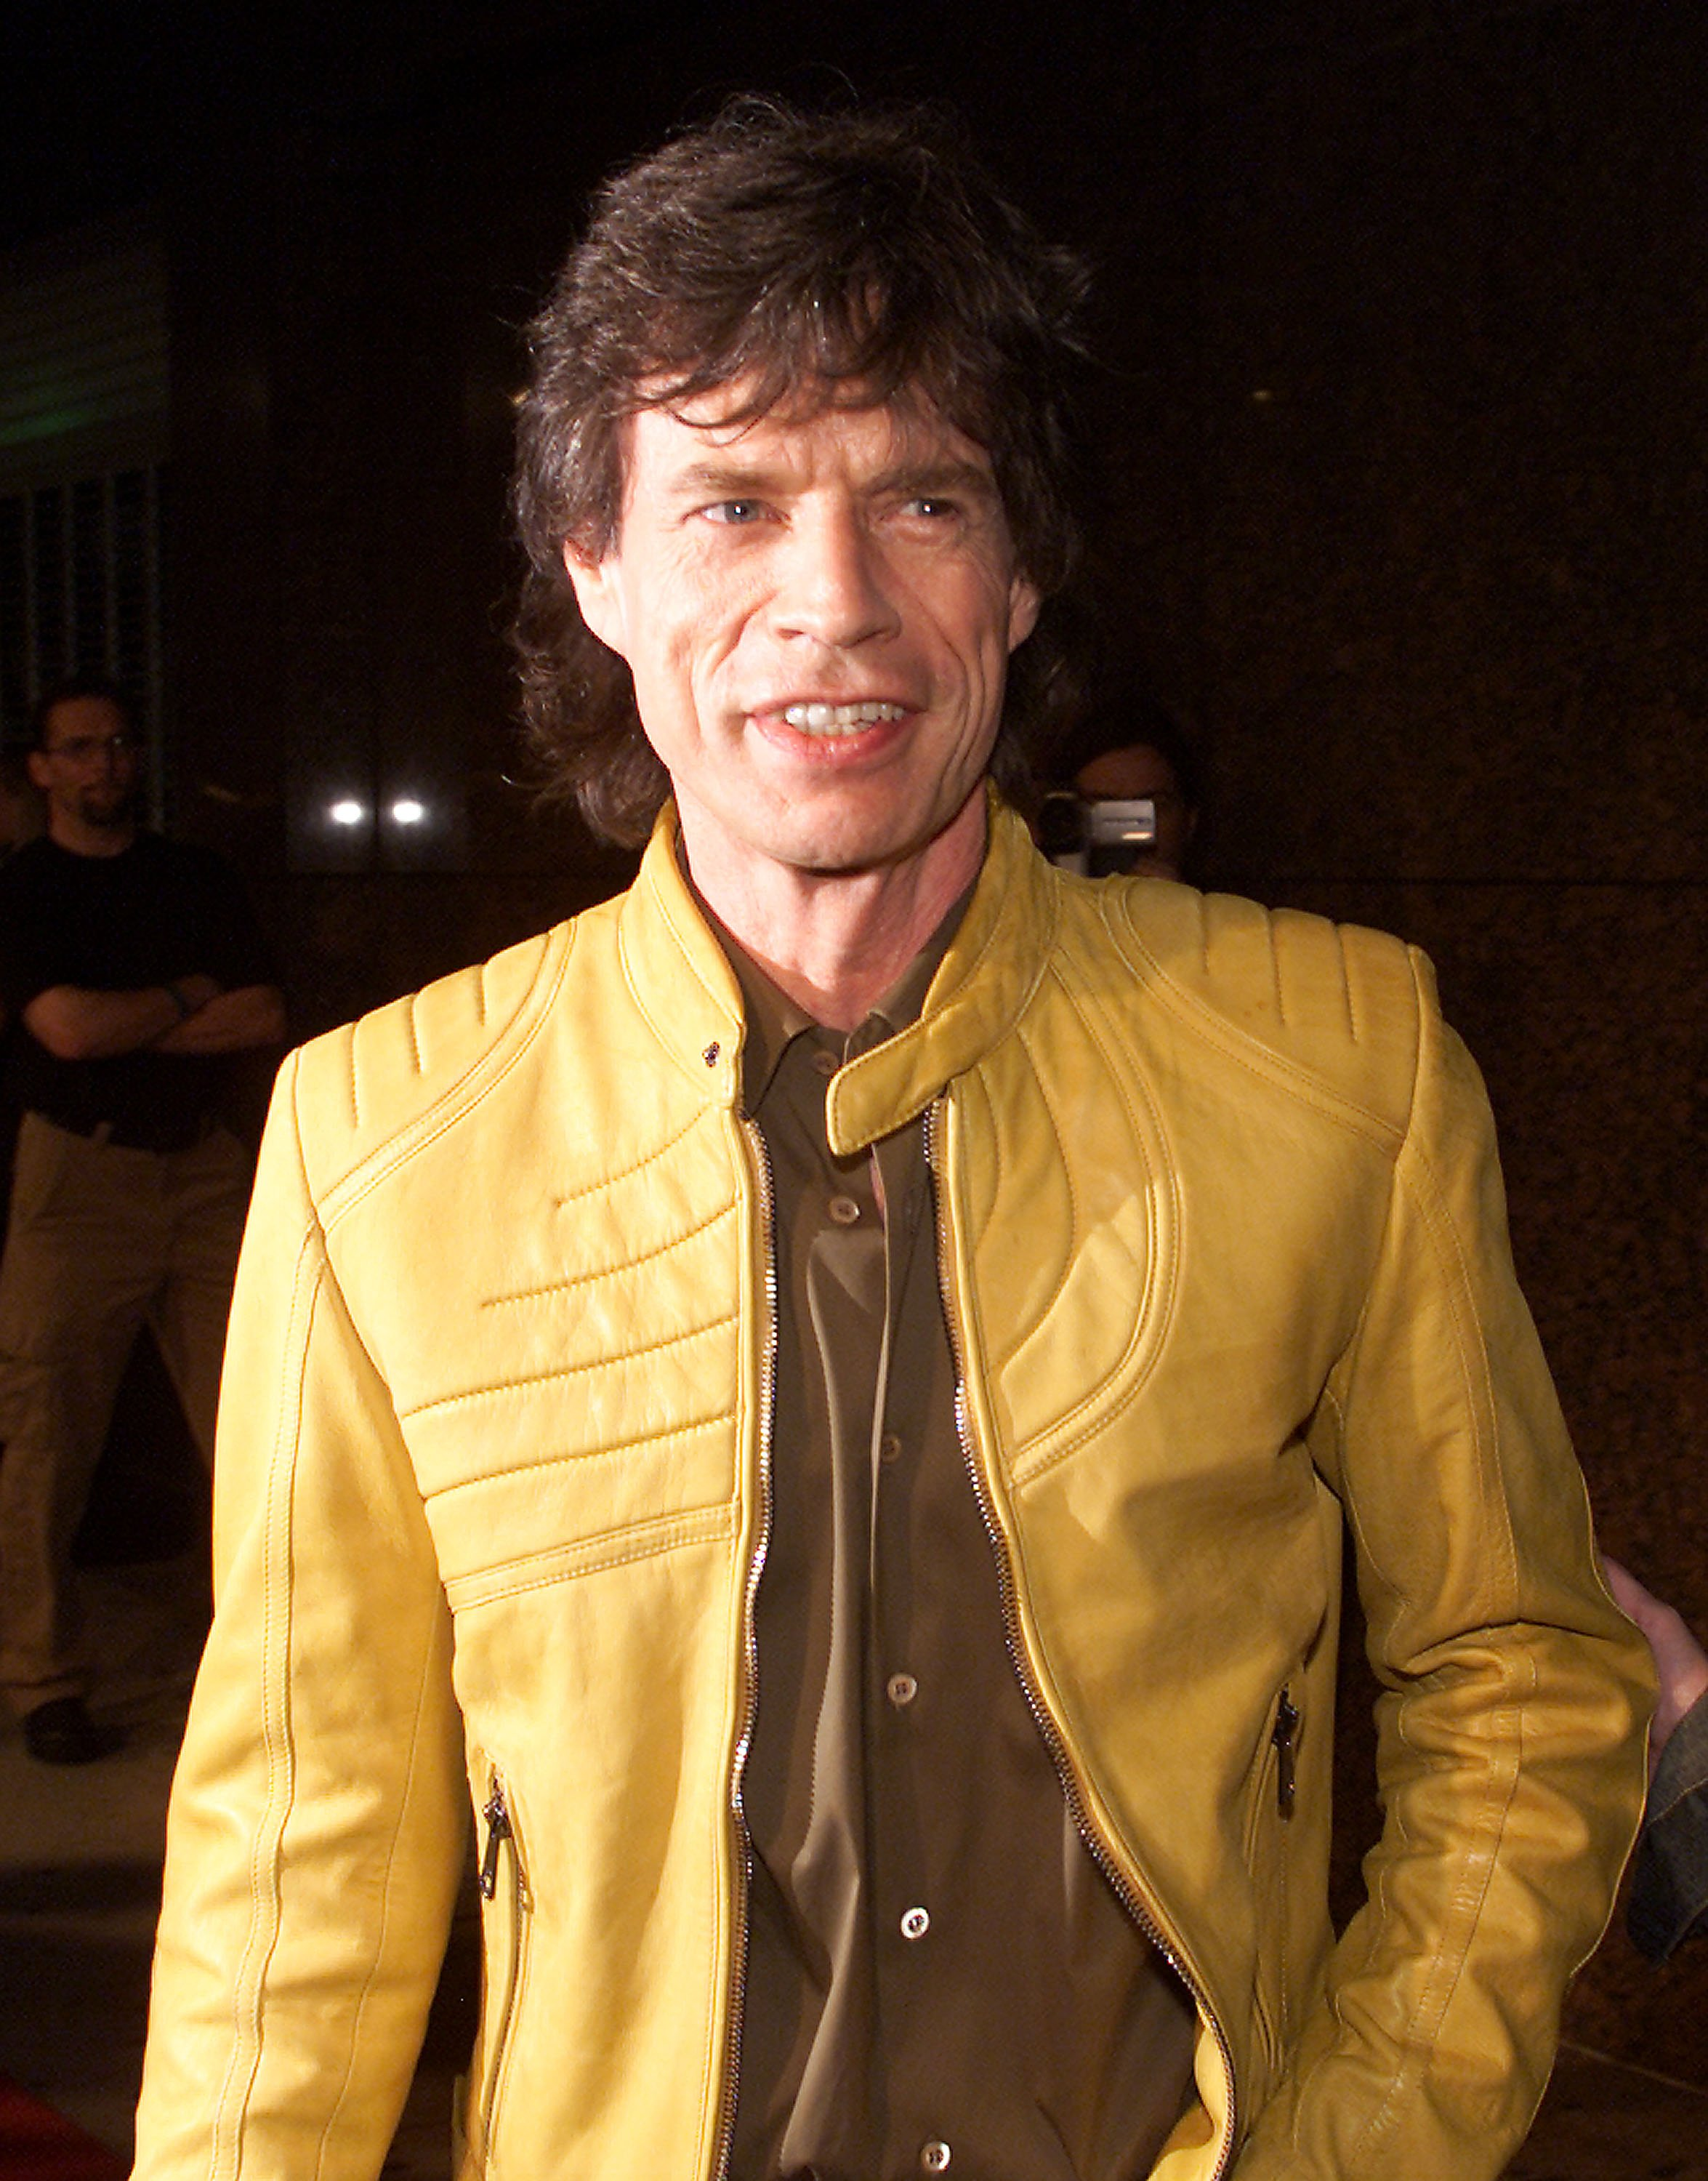 Mick Jagger Image Source: Getty Images.